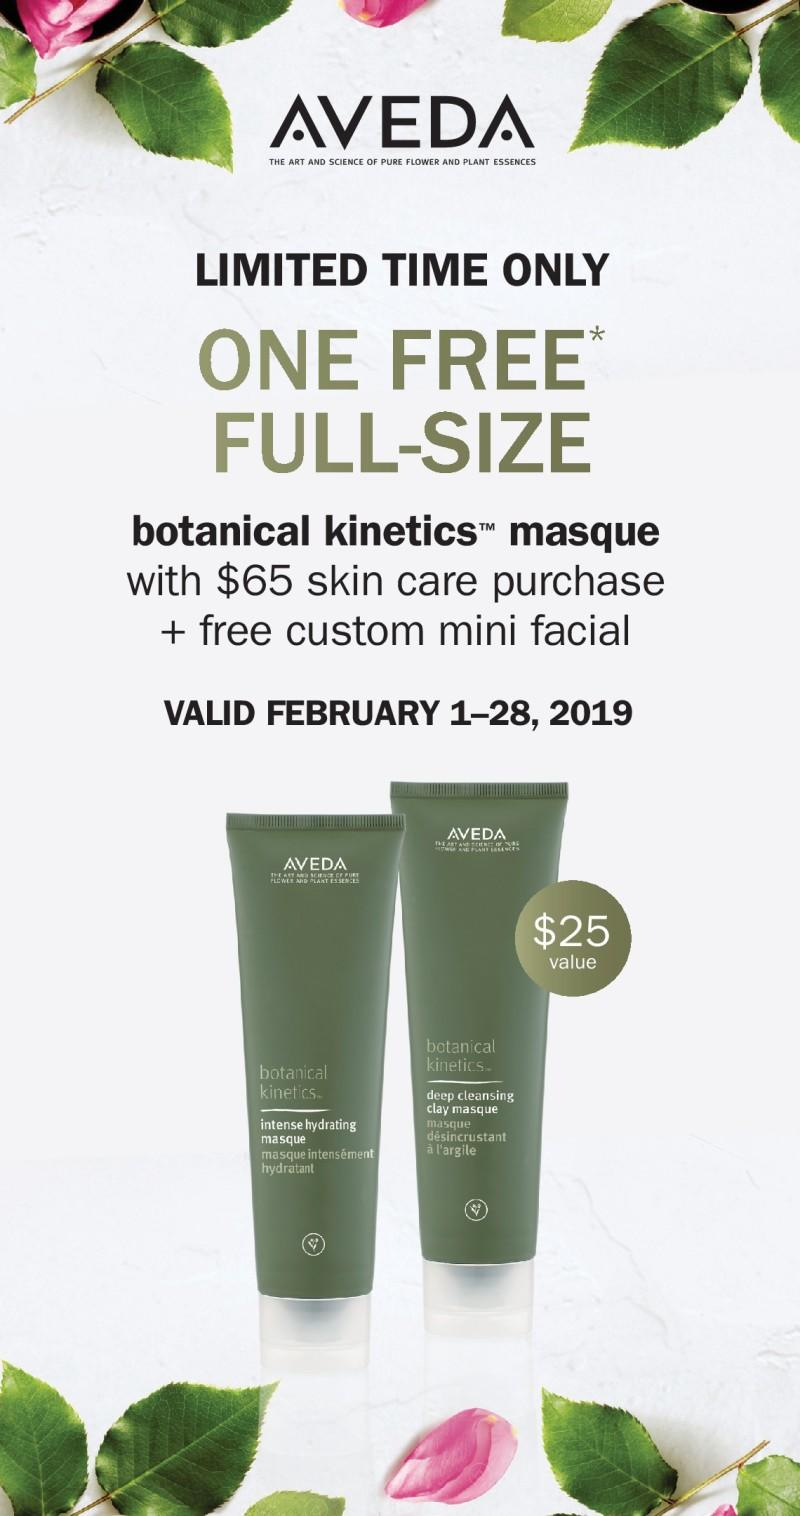 Free full-size with purchase